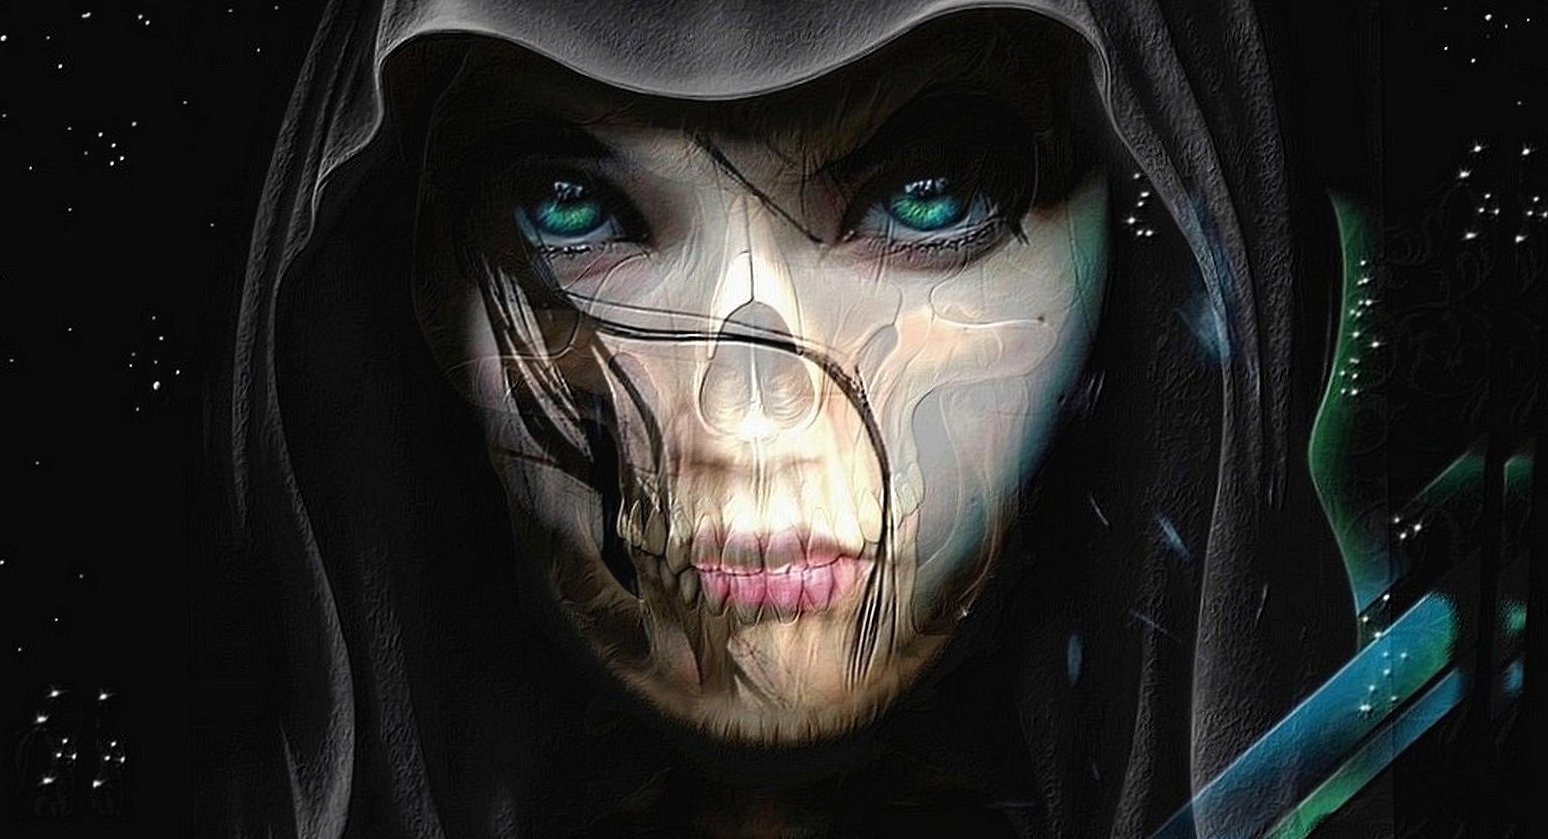 Dead girl fantasy wallpapers HD quality